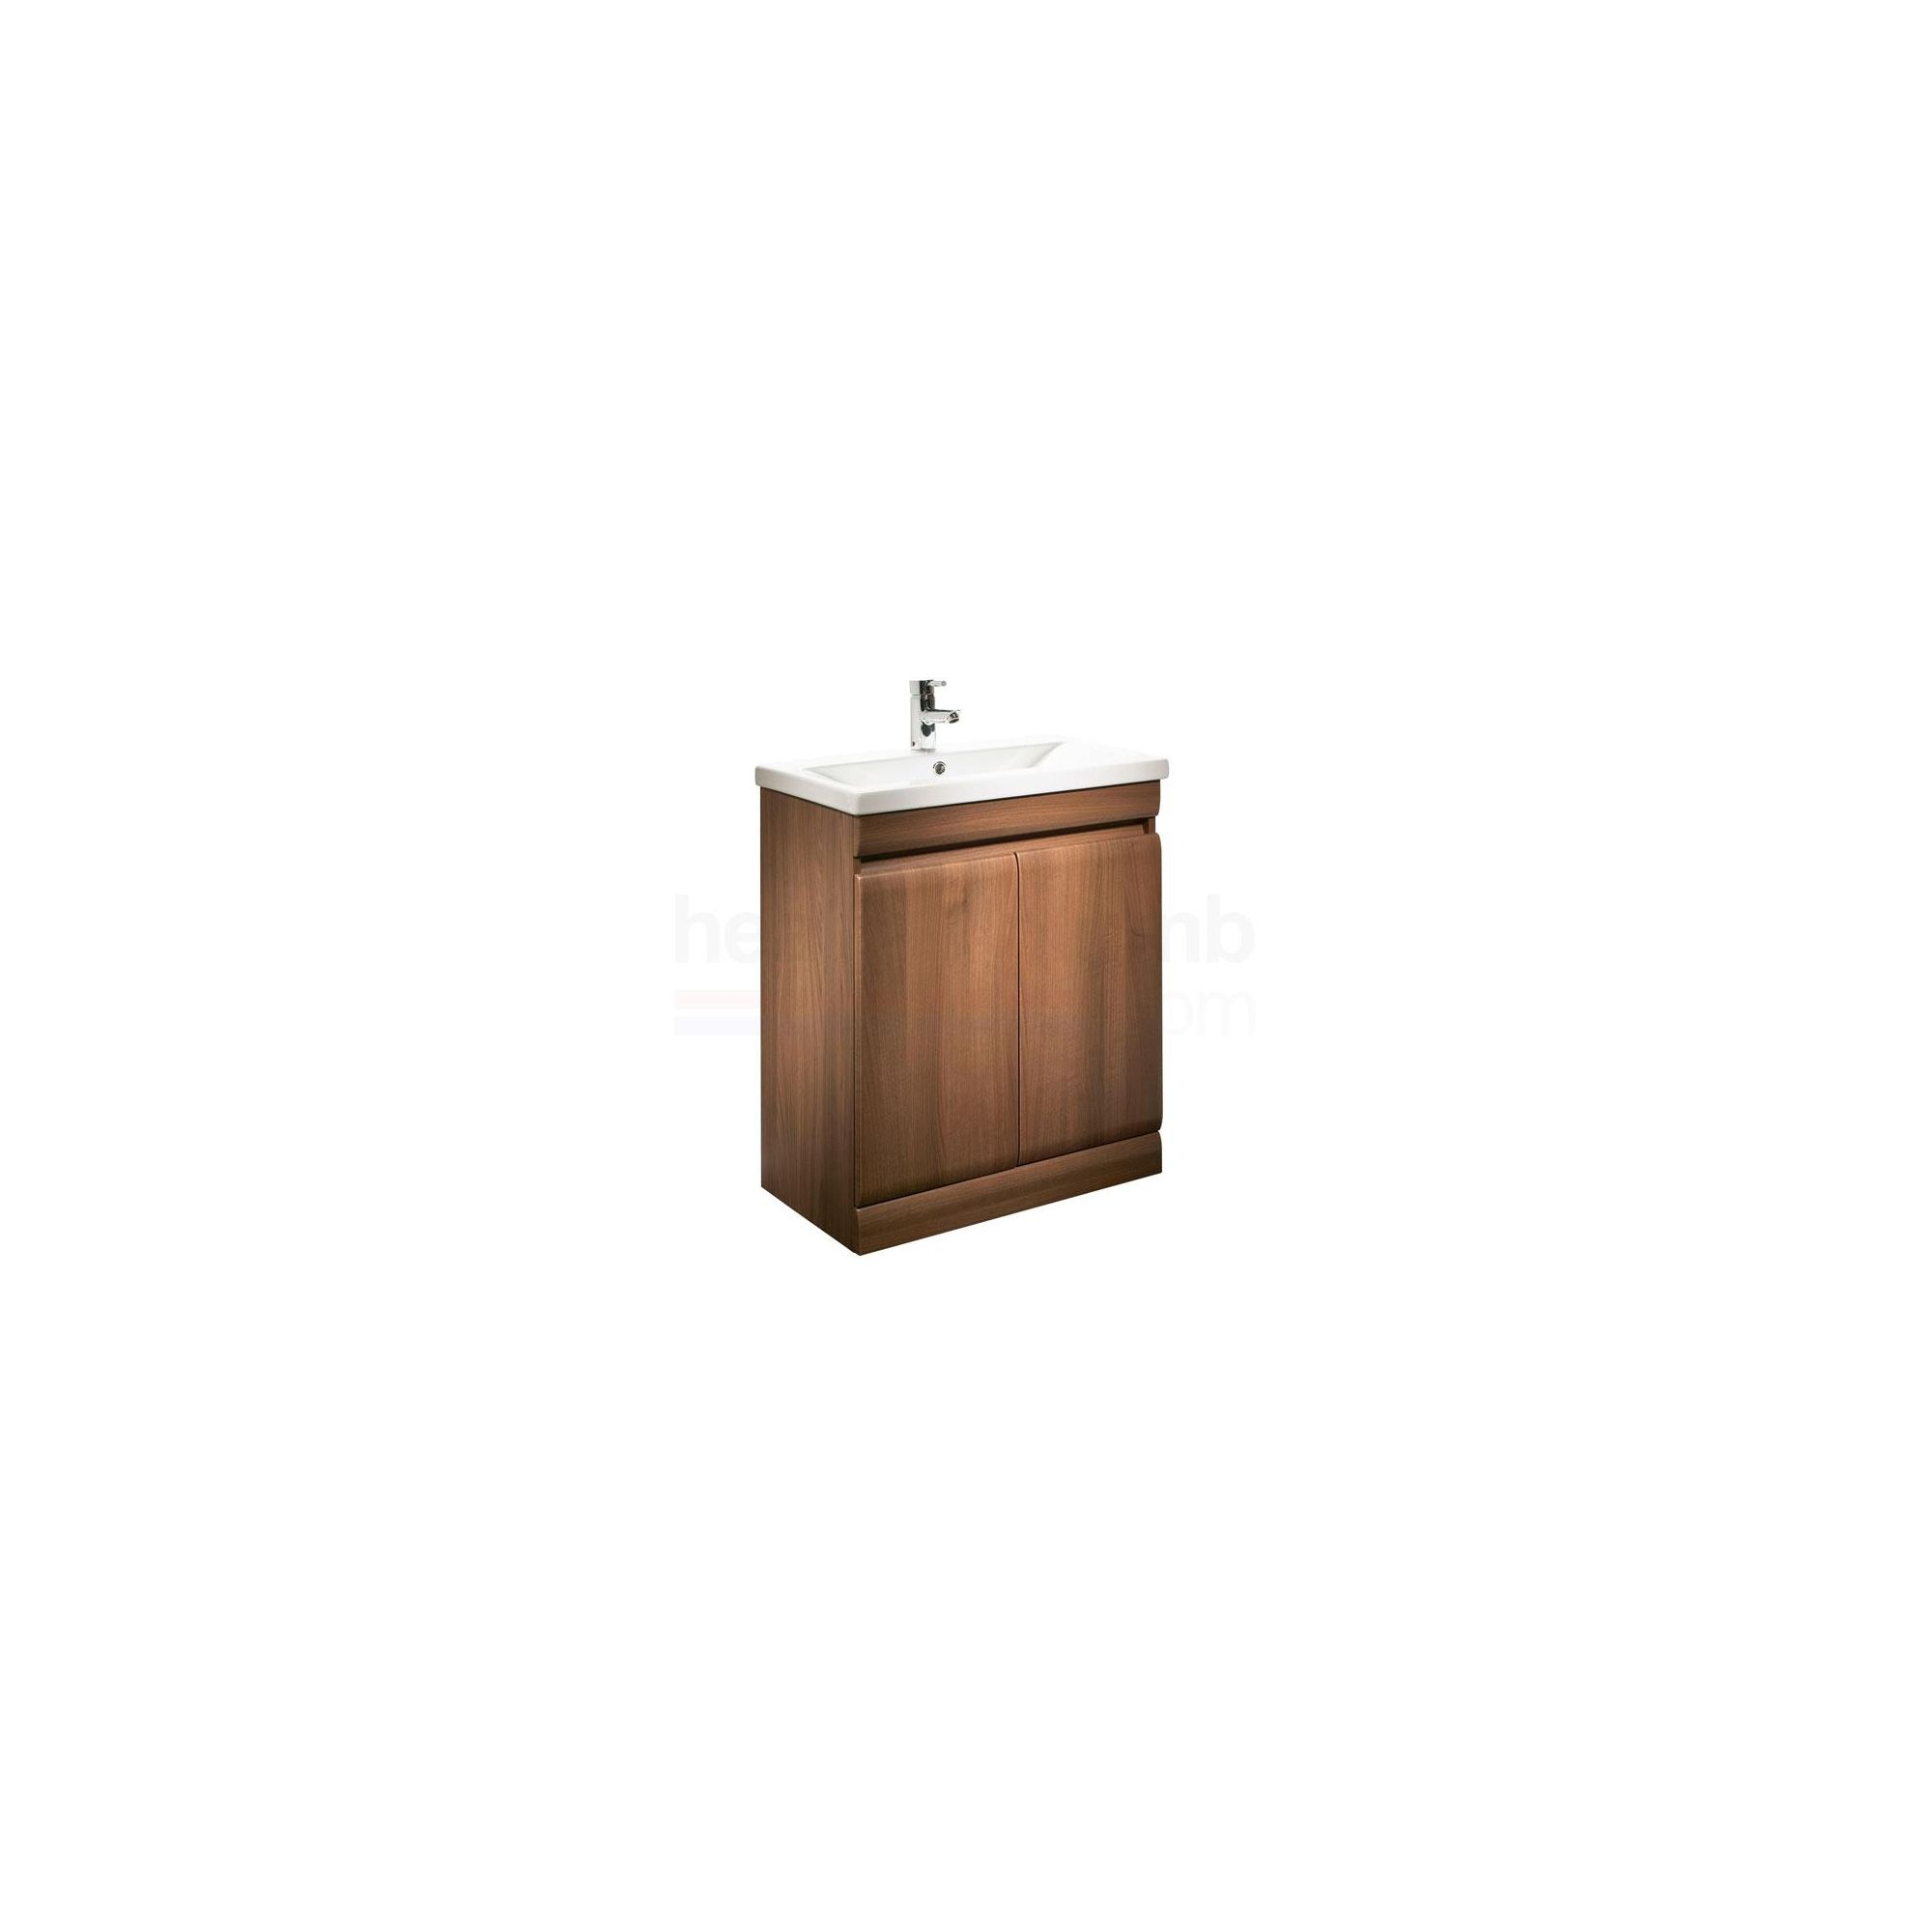 Tavistock groove white floor standing cabinet and basin for Bathroom cabinets 700mm